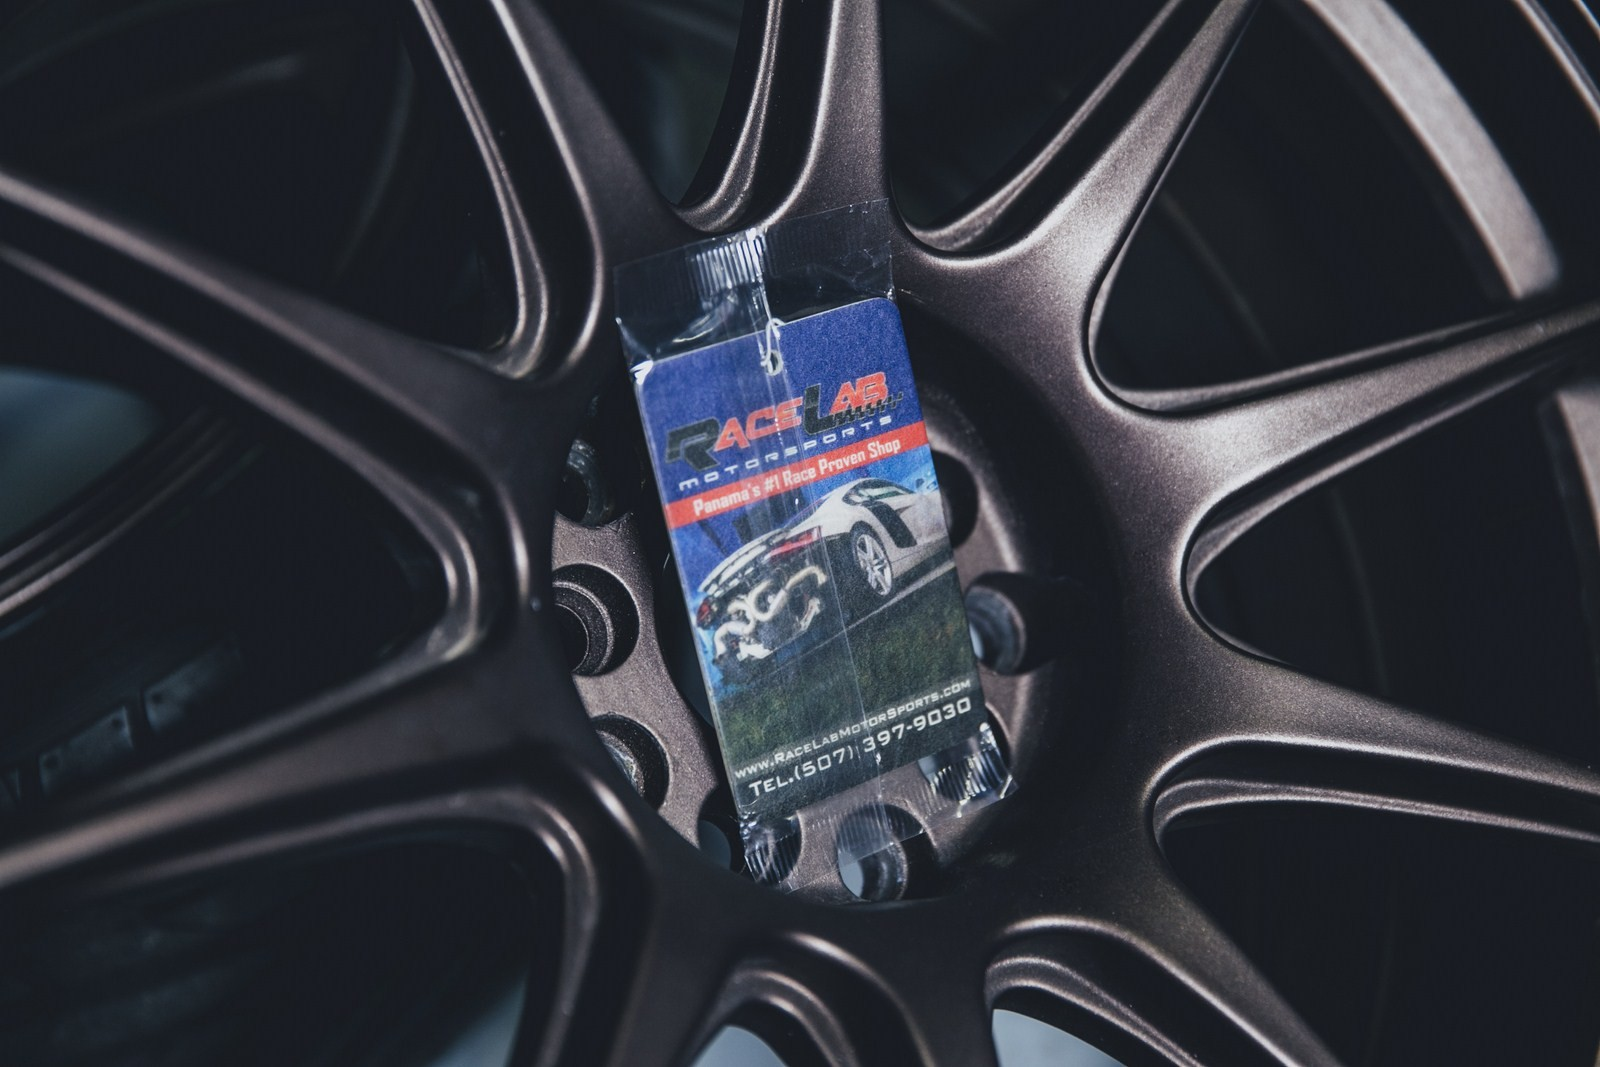 Race Lab Motorsports Air Freshners - $3